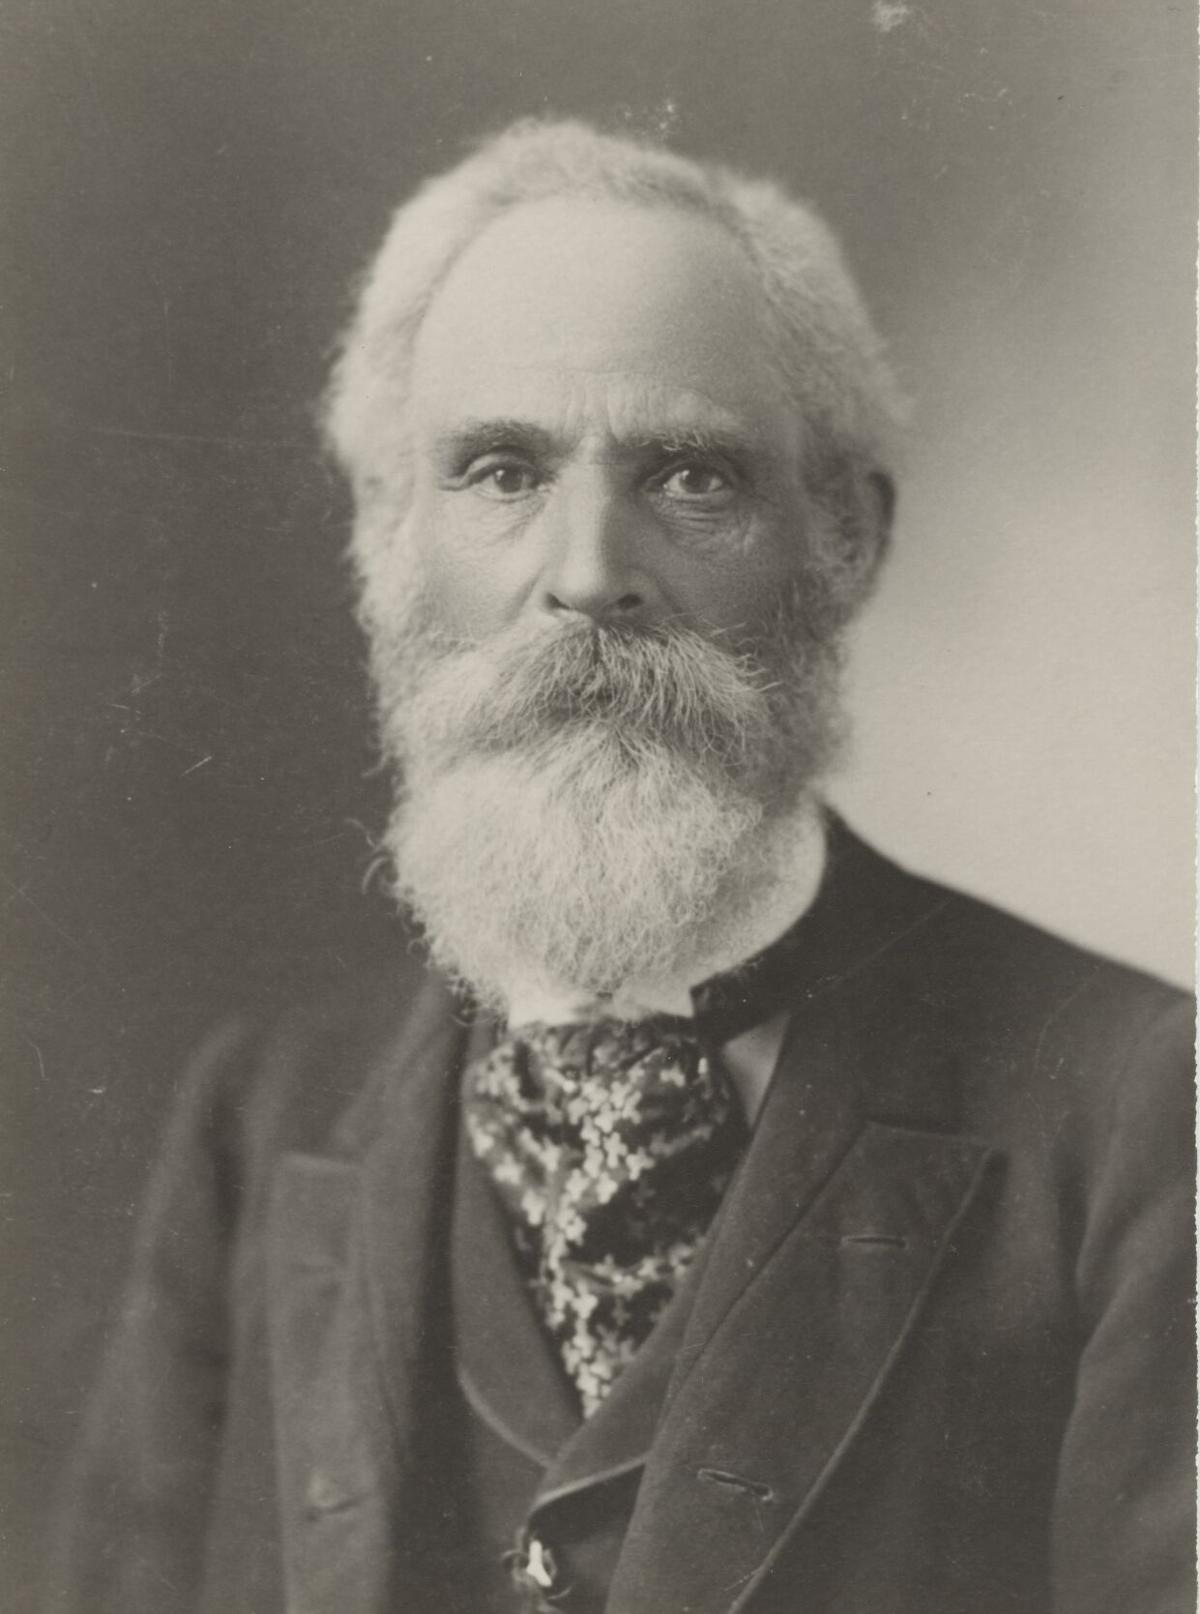 B.C. Yancey (used with special permission)